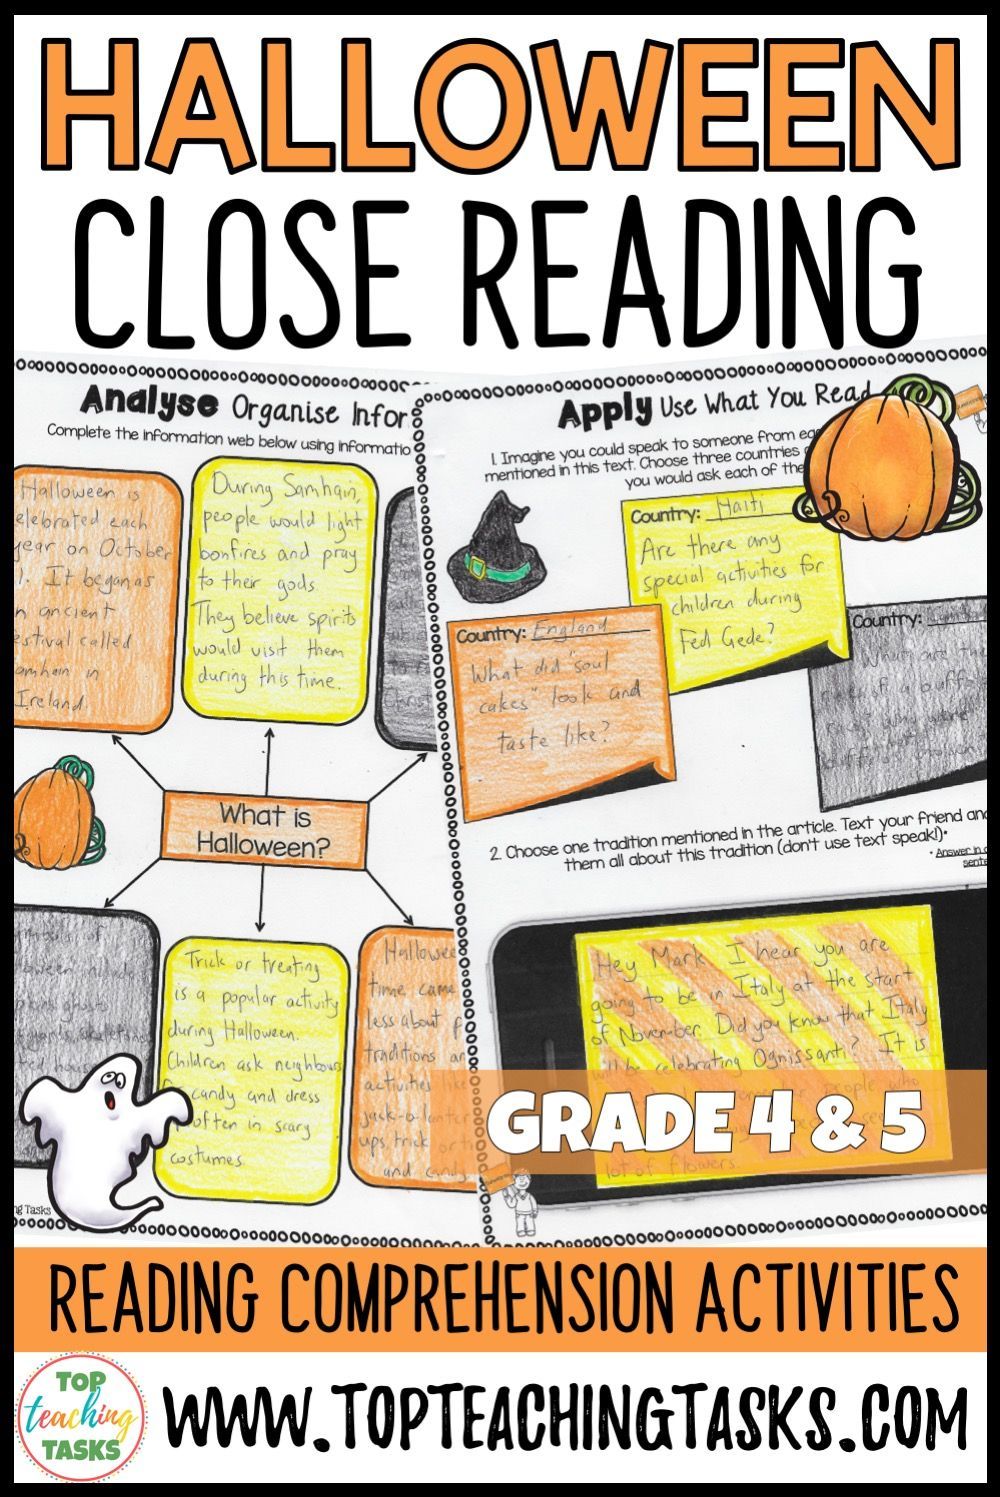 Hook Your Students Into Reading With This Engaging Halloween Themed Resource This Acti Halloween Reading Comprehension Reading Comprehension Halloween Reading [ 1497 x 1000 Pixel ]